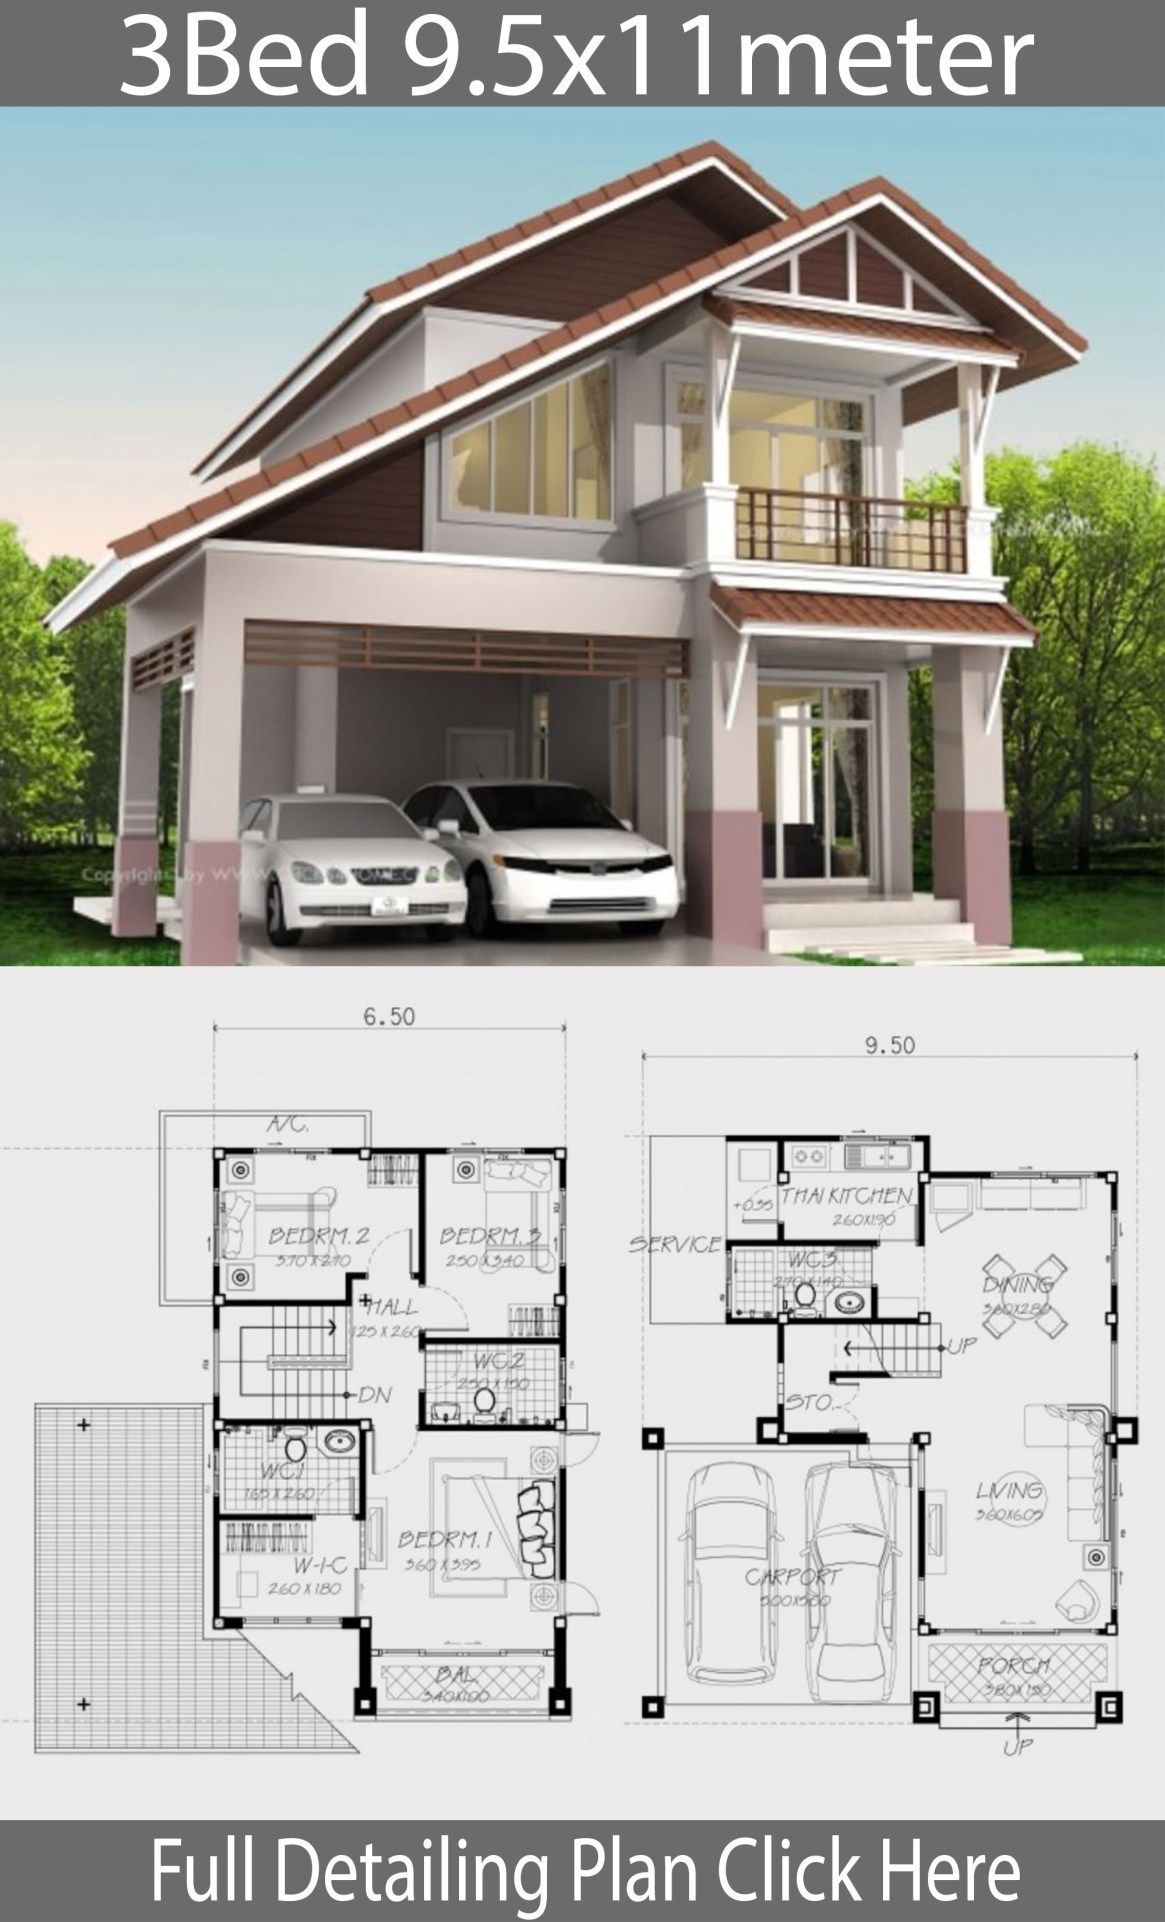 Home Design Plan 9 5x11m With 3 Bedrooms Home Design With Plansearch Narrowlothouseplans Dreamhousepla In 2020 House Layout Plans Home Design Plan Home Design Plans